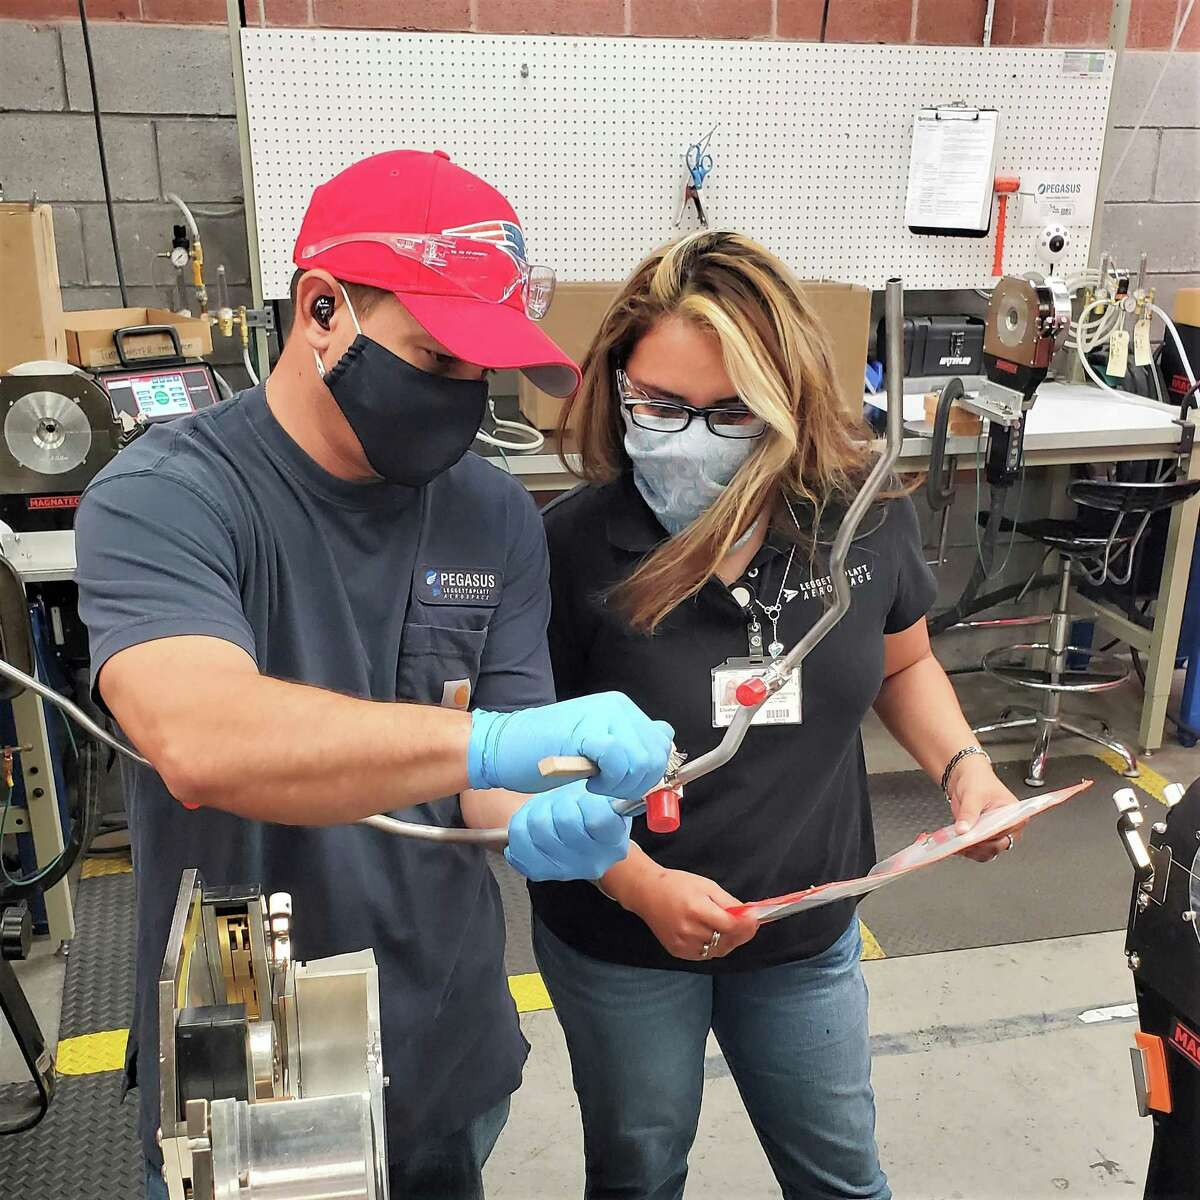 Middlesex Community College student Liz Moag, right, is shown at Pegasus Manufacturing in Middletown. The school recently received $12,500 in grants from the Gene Haas Foundation, which will be awarded to precision manufacturing students.